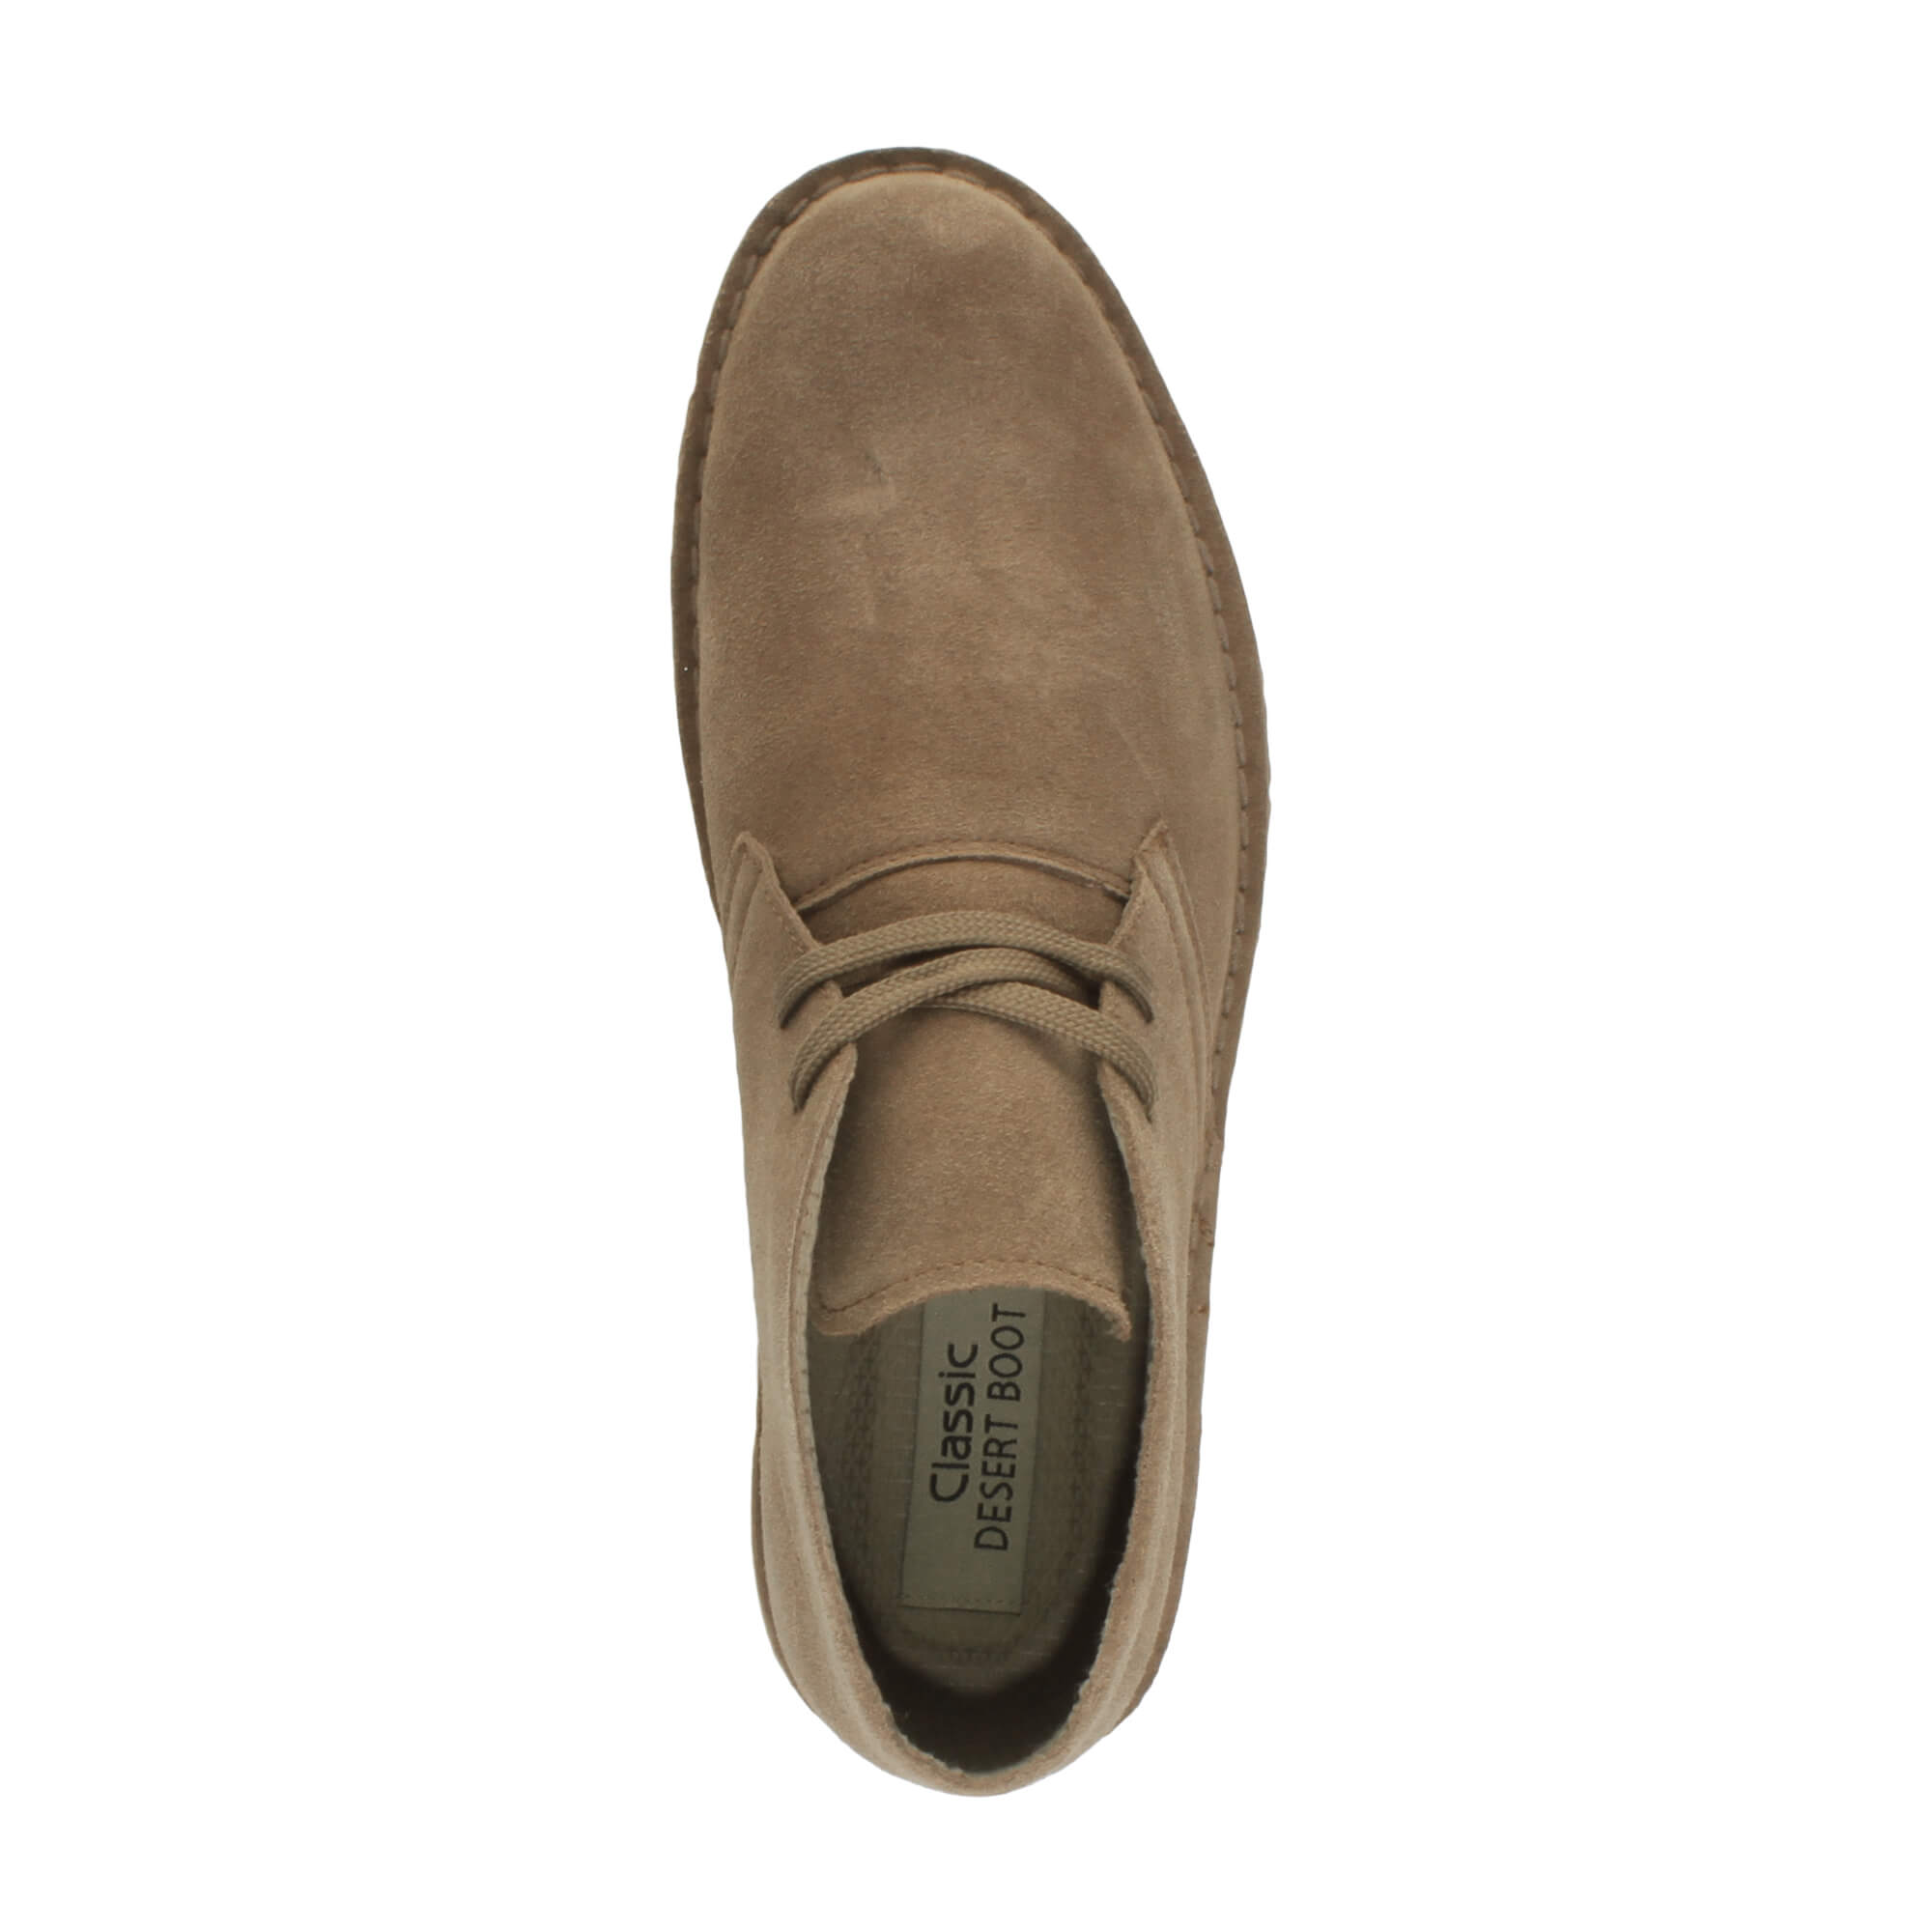 MENS-LACE-UP-CLASSIC-SUEDE-LEATHER-DESERT-WORK-ANKLE-FLAT-BOOTS-SHOES-SIZE